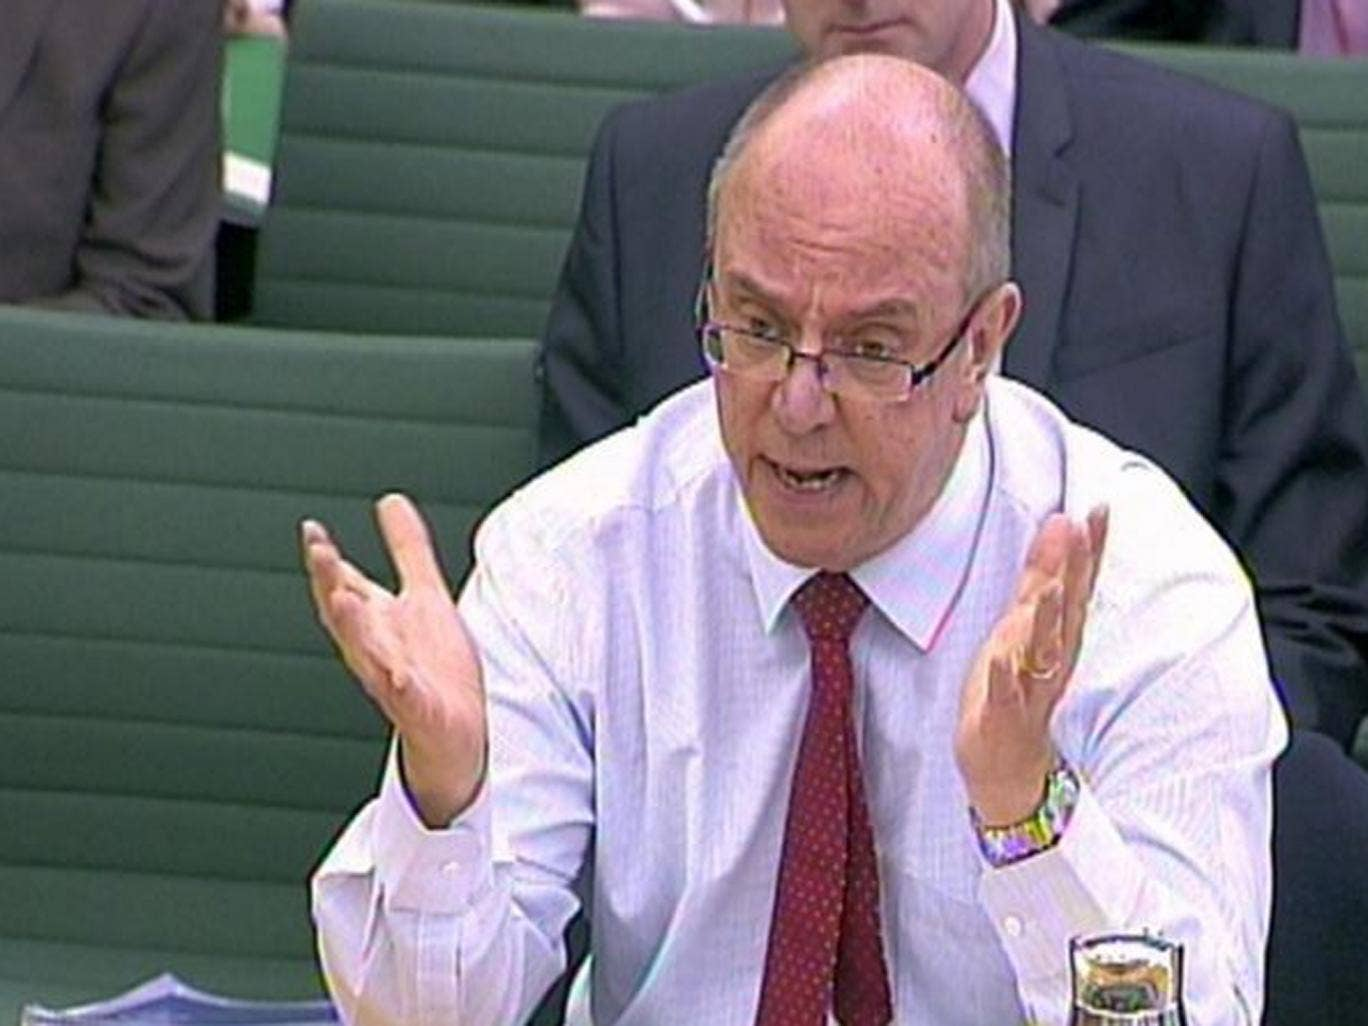 Sir David Nicholson, who has been facing calls for his resignation over the scandal, told the Health Select Committee that he was deeply, deeply saddened by reading the stories of patients who had been mistreated